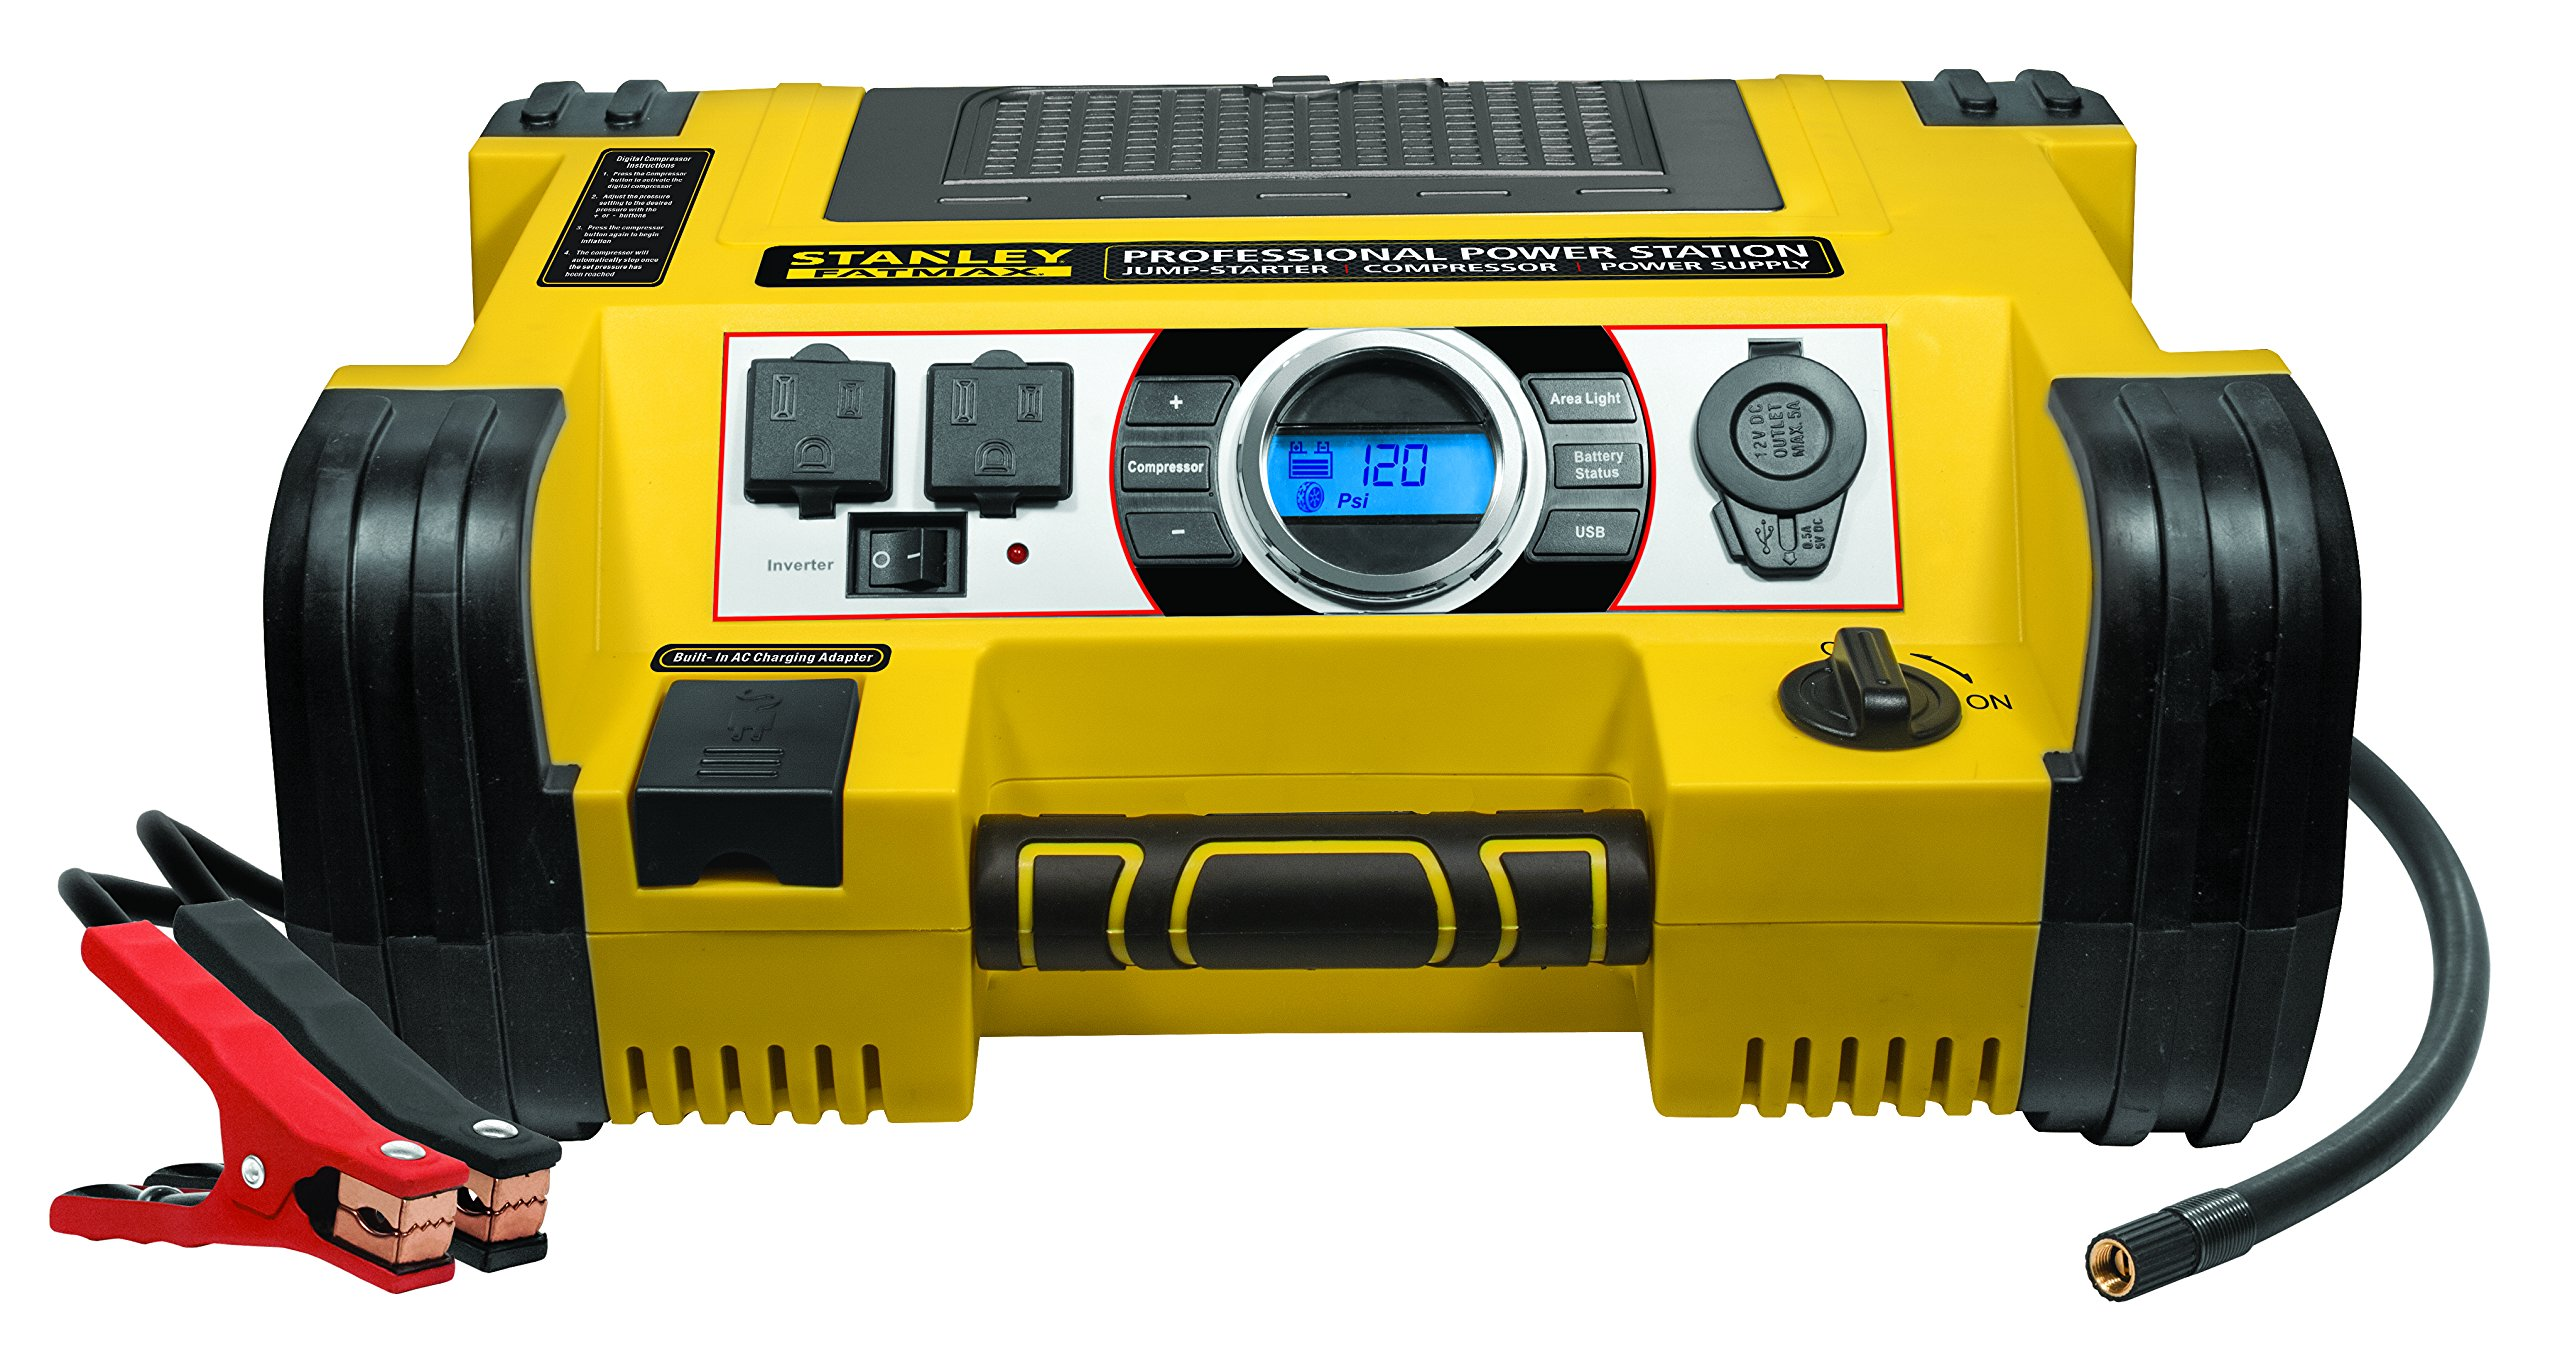 STANLEY FATMAX PPRH7DS Professional Power Station Jump Starter: 1400 Peak/700 Instant Amps, 500W Inverter, 120 PSI Air Compressor, Battery Clamps by STANLEY